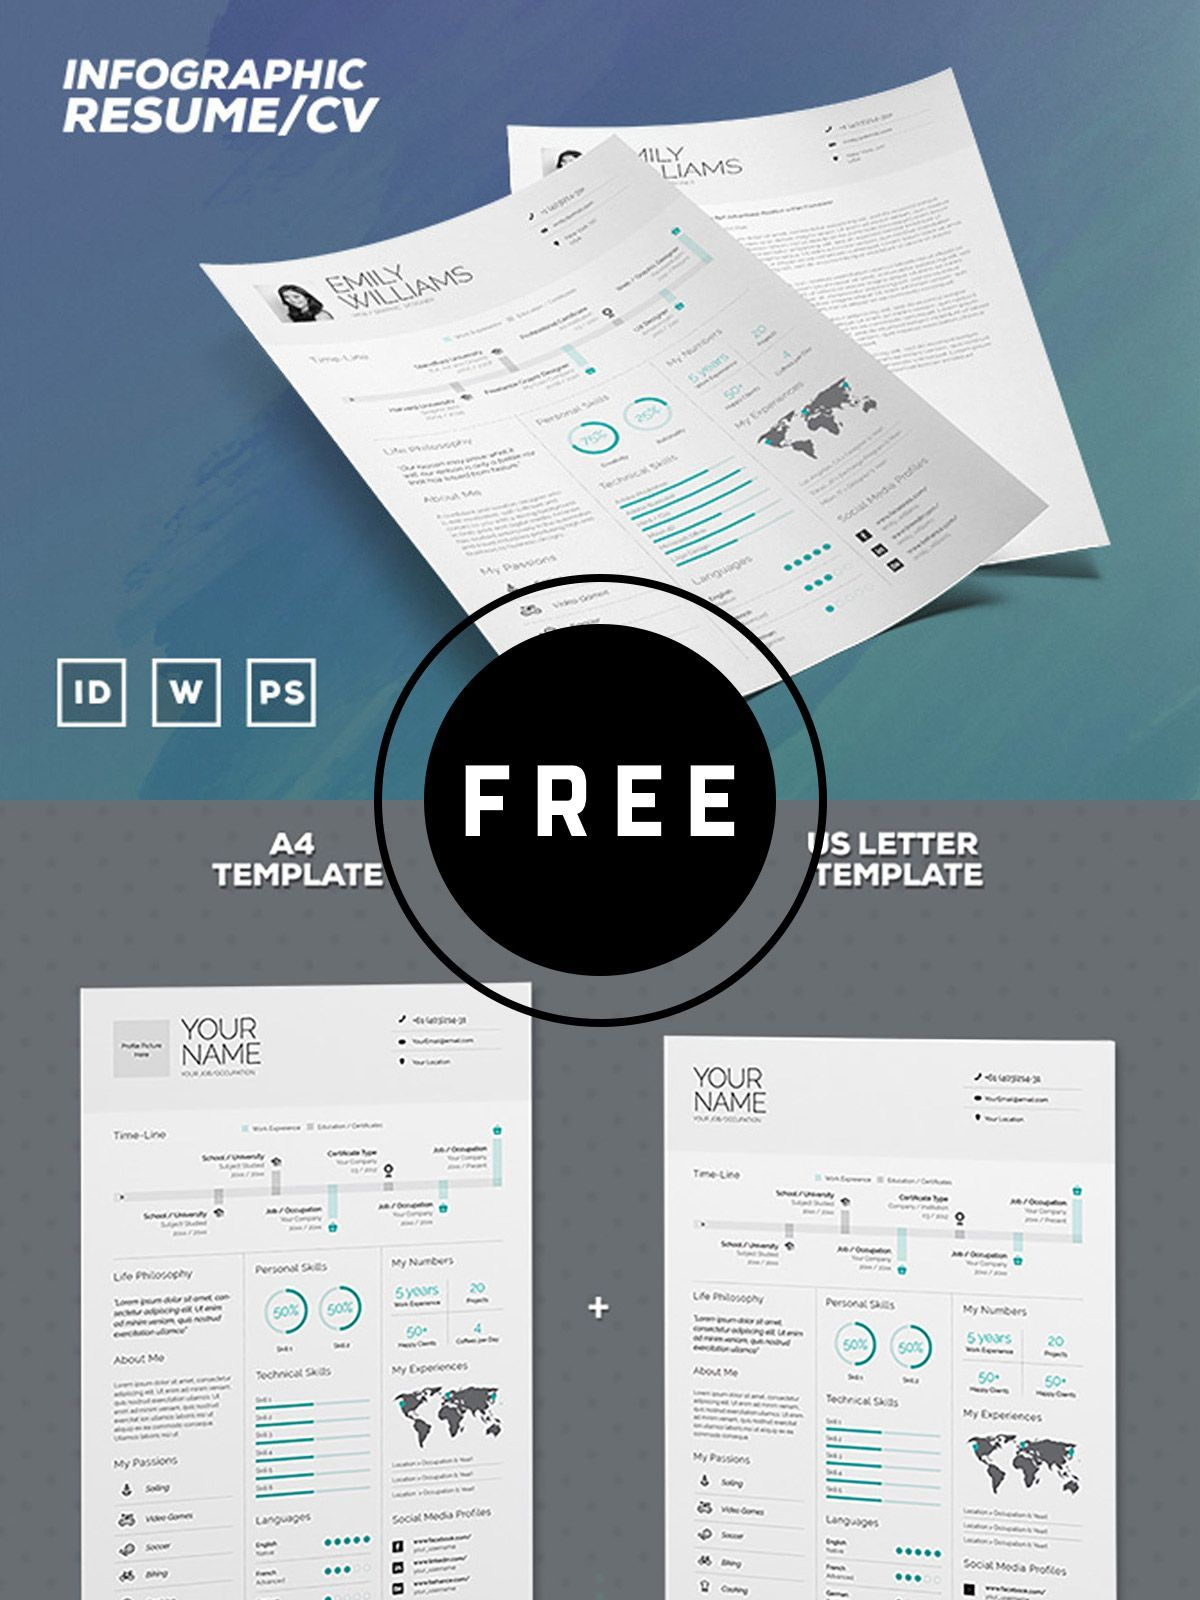 Infographic Resume Template Psd